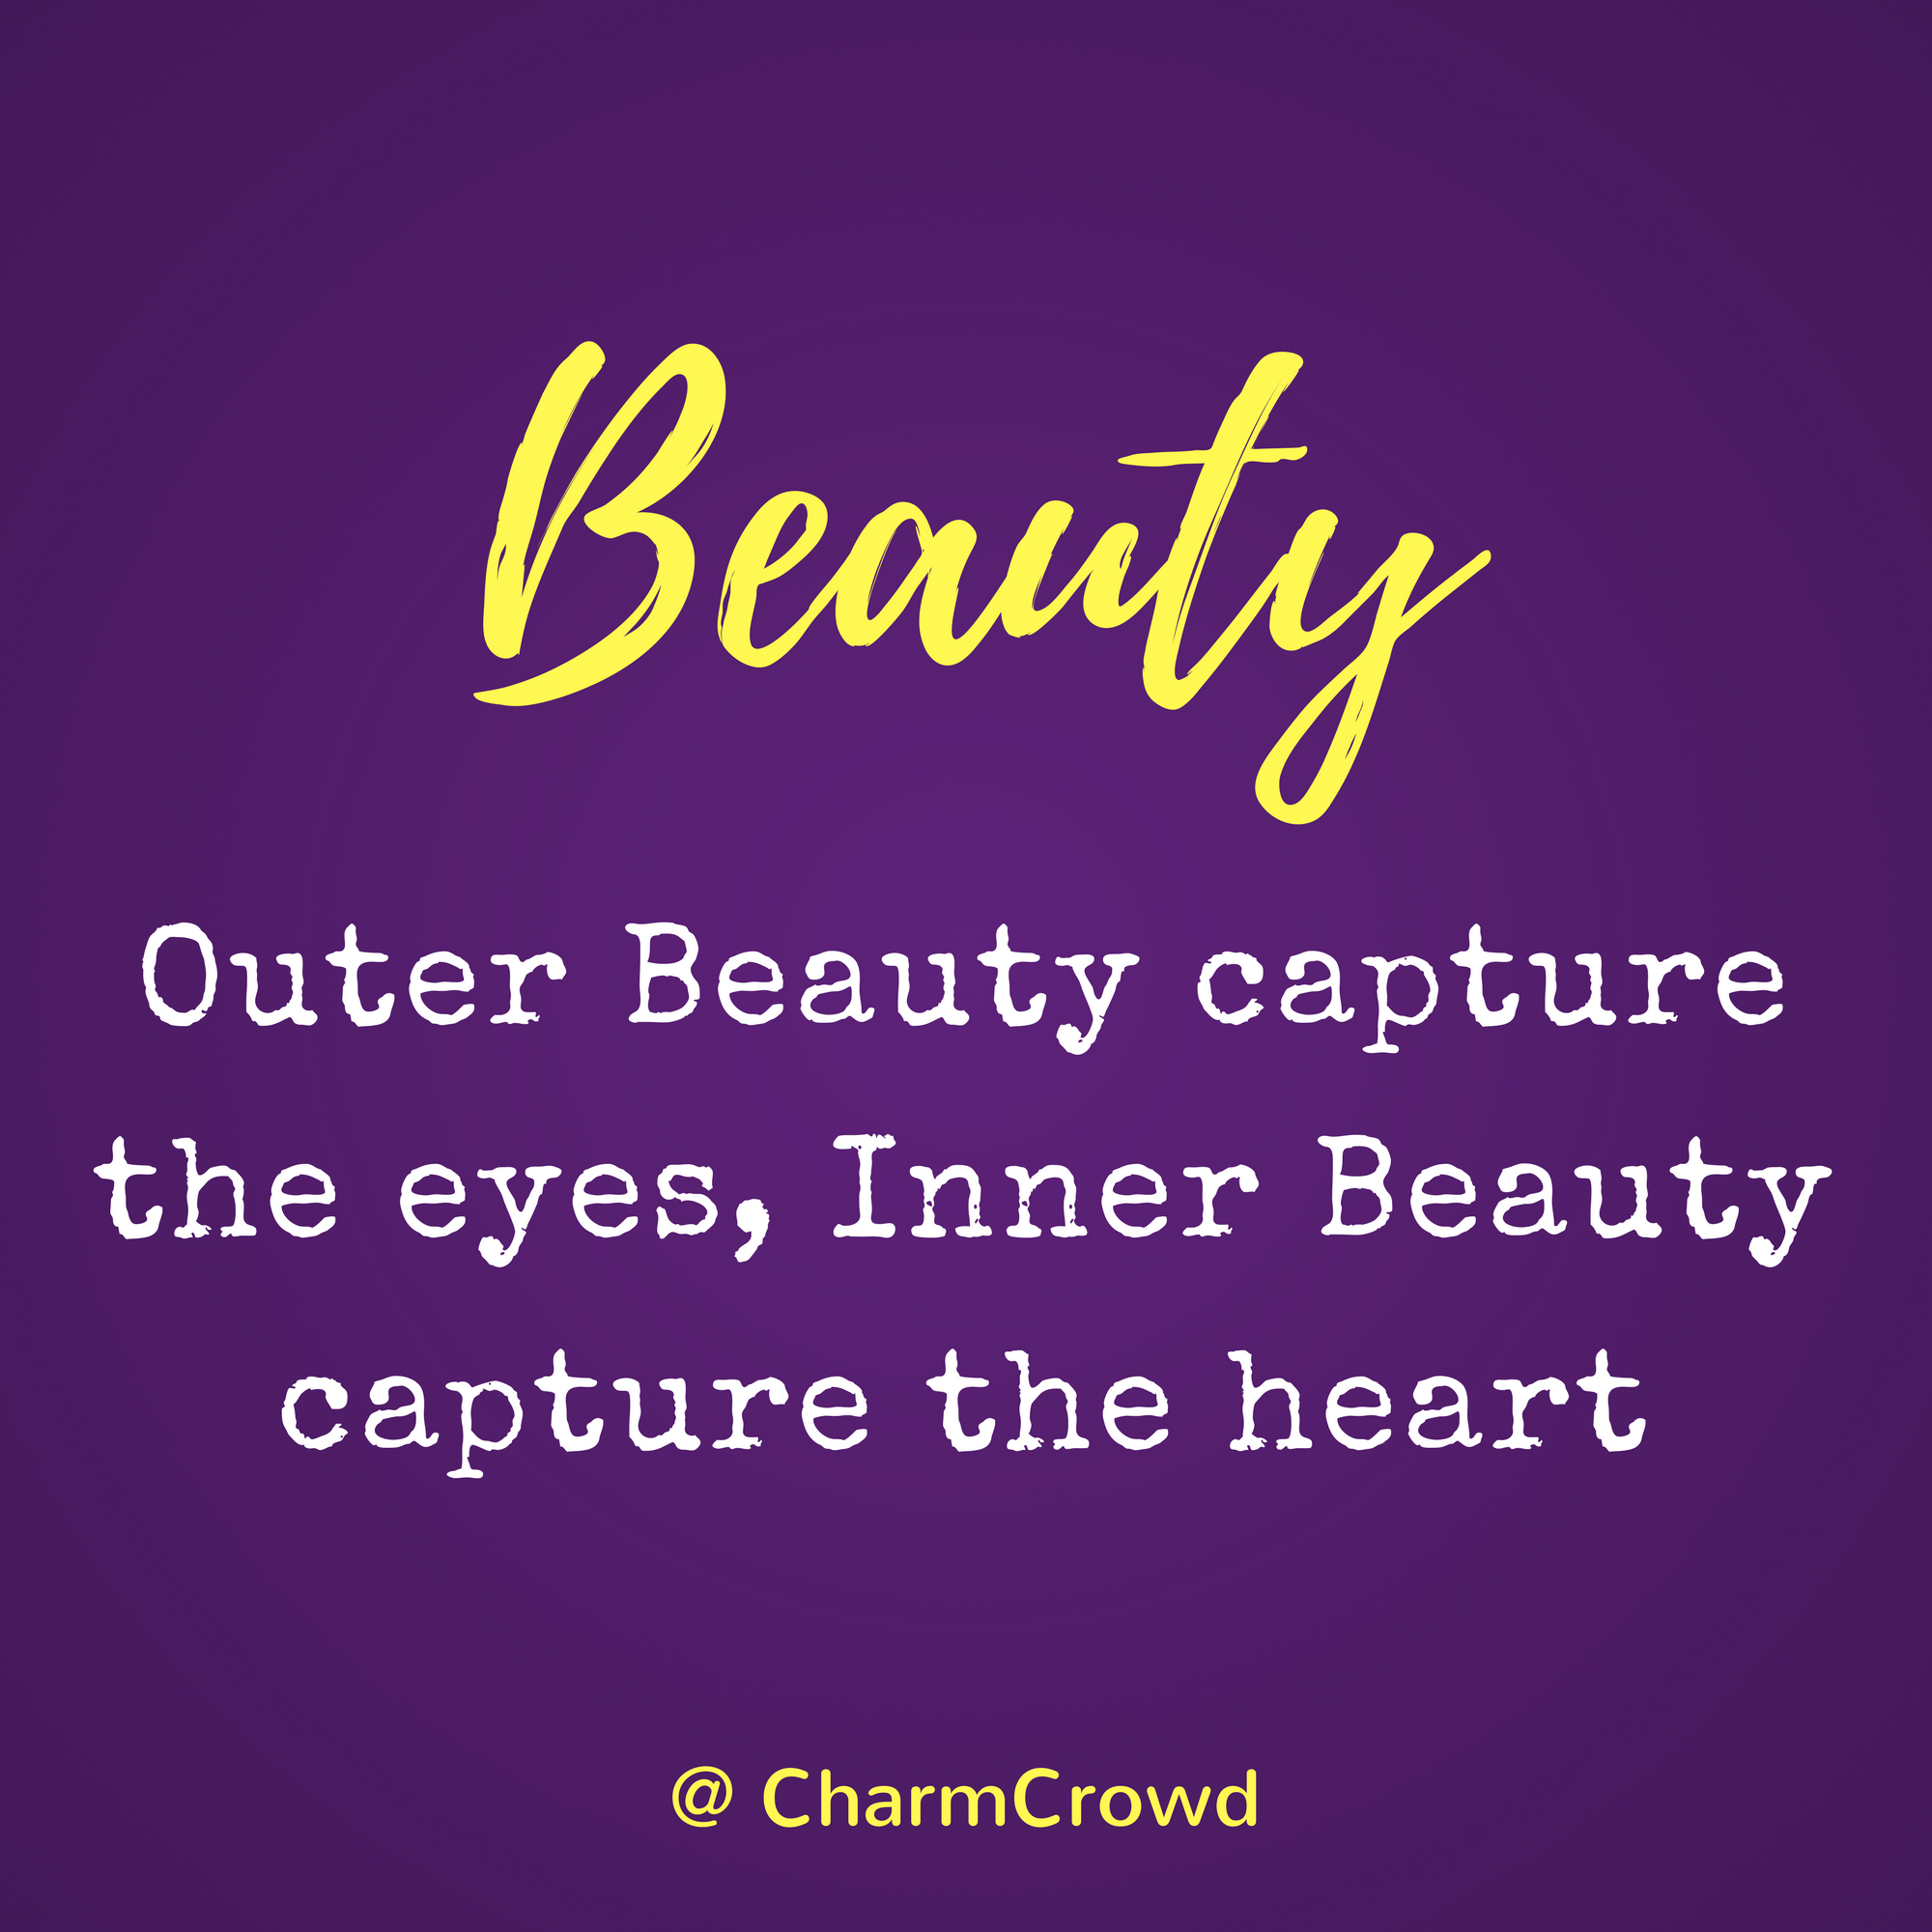 inner beauty is the real beauty